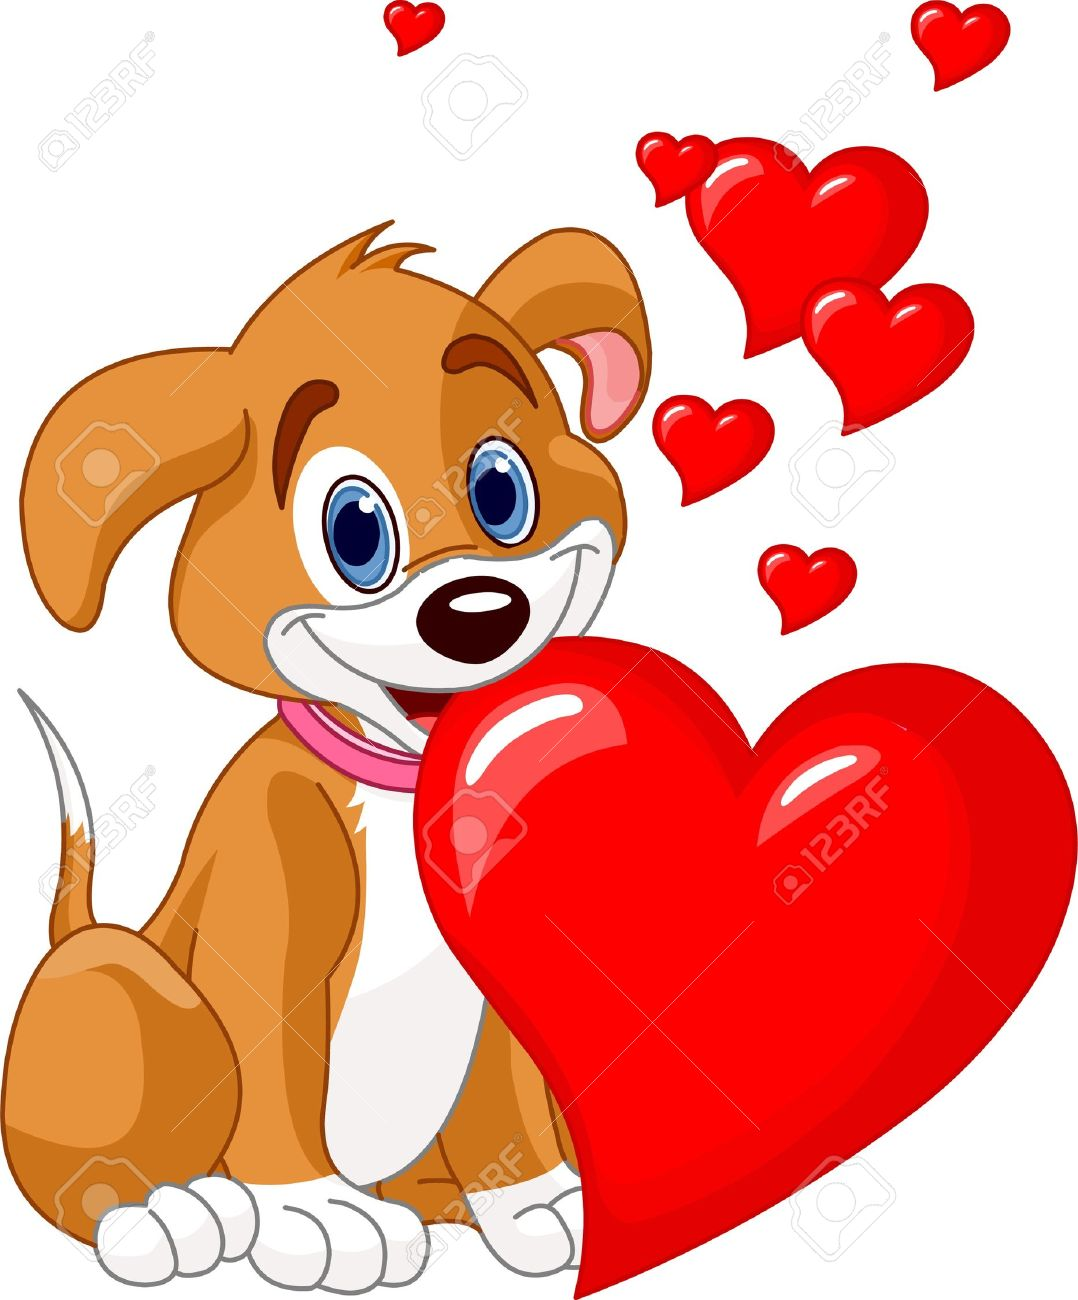 http://previews.123rf.com/images/dazdraperma/dazdraperma1101/dazdraperma110100060/8668278-Cute-puppy-holding-a-red-heart-in-her-mouth-Add-your-own-text--Stock-Photo.jpg